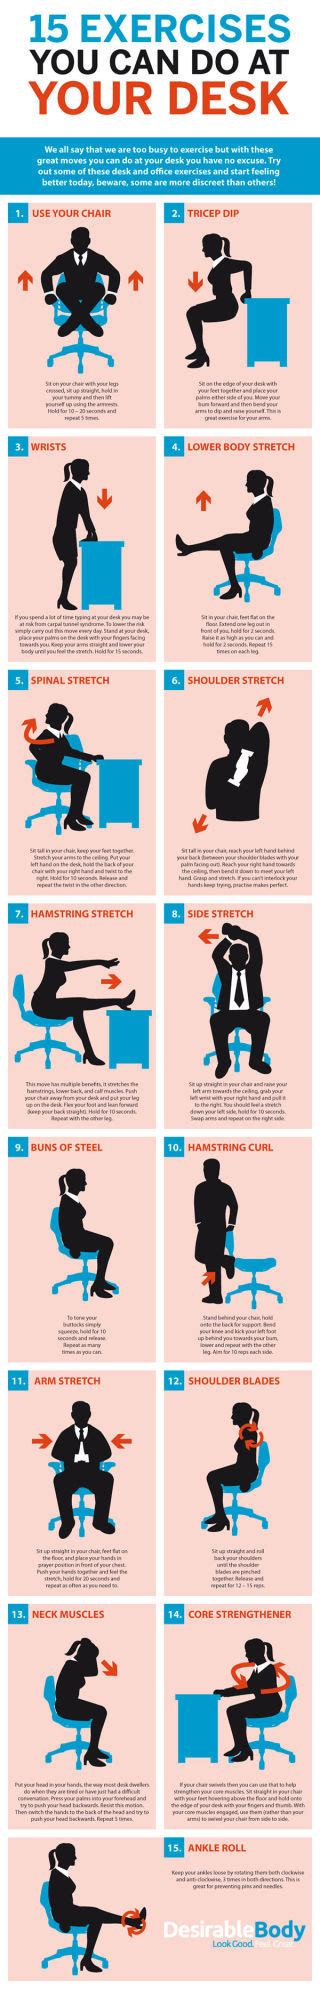 exercises you can do at your desk 15 exercises you can do at your desk pictures photos and